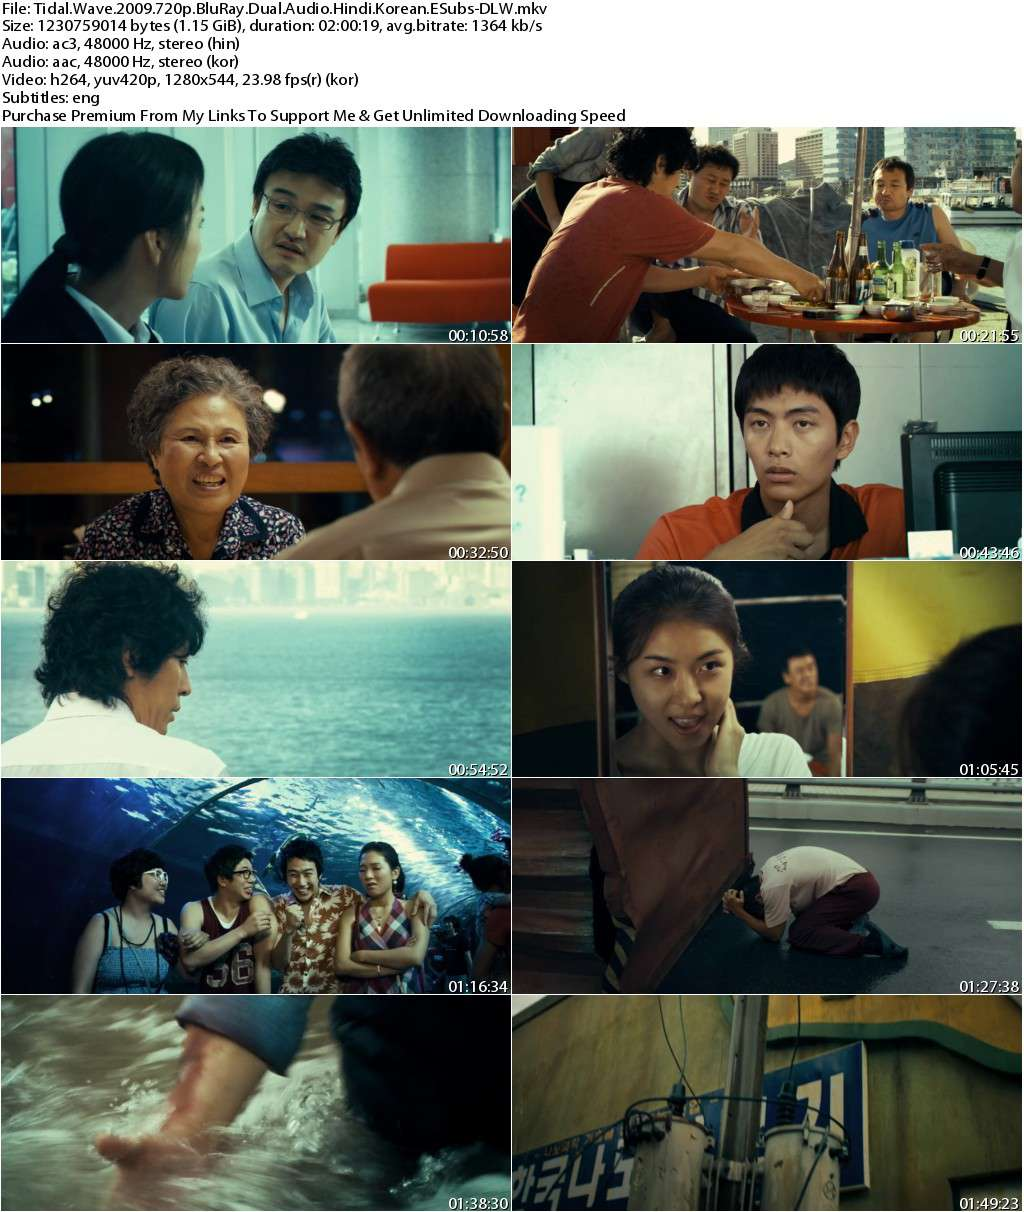 Tidal Wave (2009) 720p BluRay Dual Audio [Hindi+Korean] ESubs-DLW